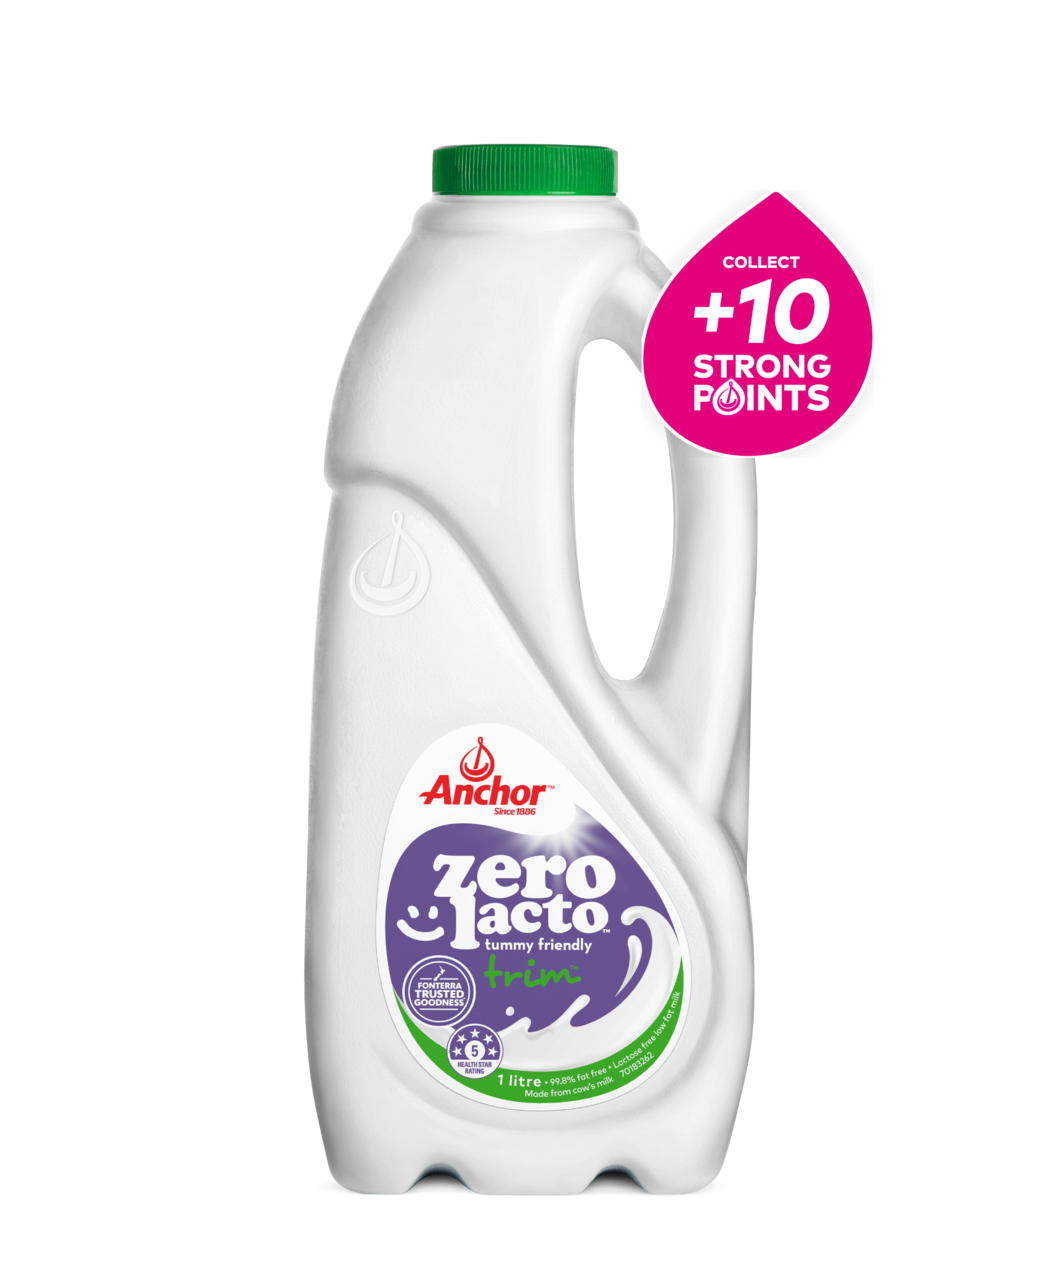 Anchor Zero Lacto Trim Milk 1L bottle